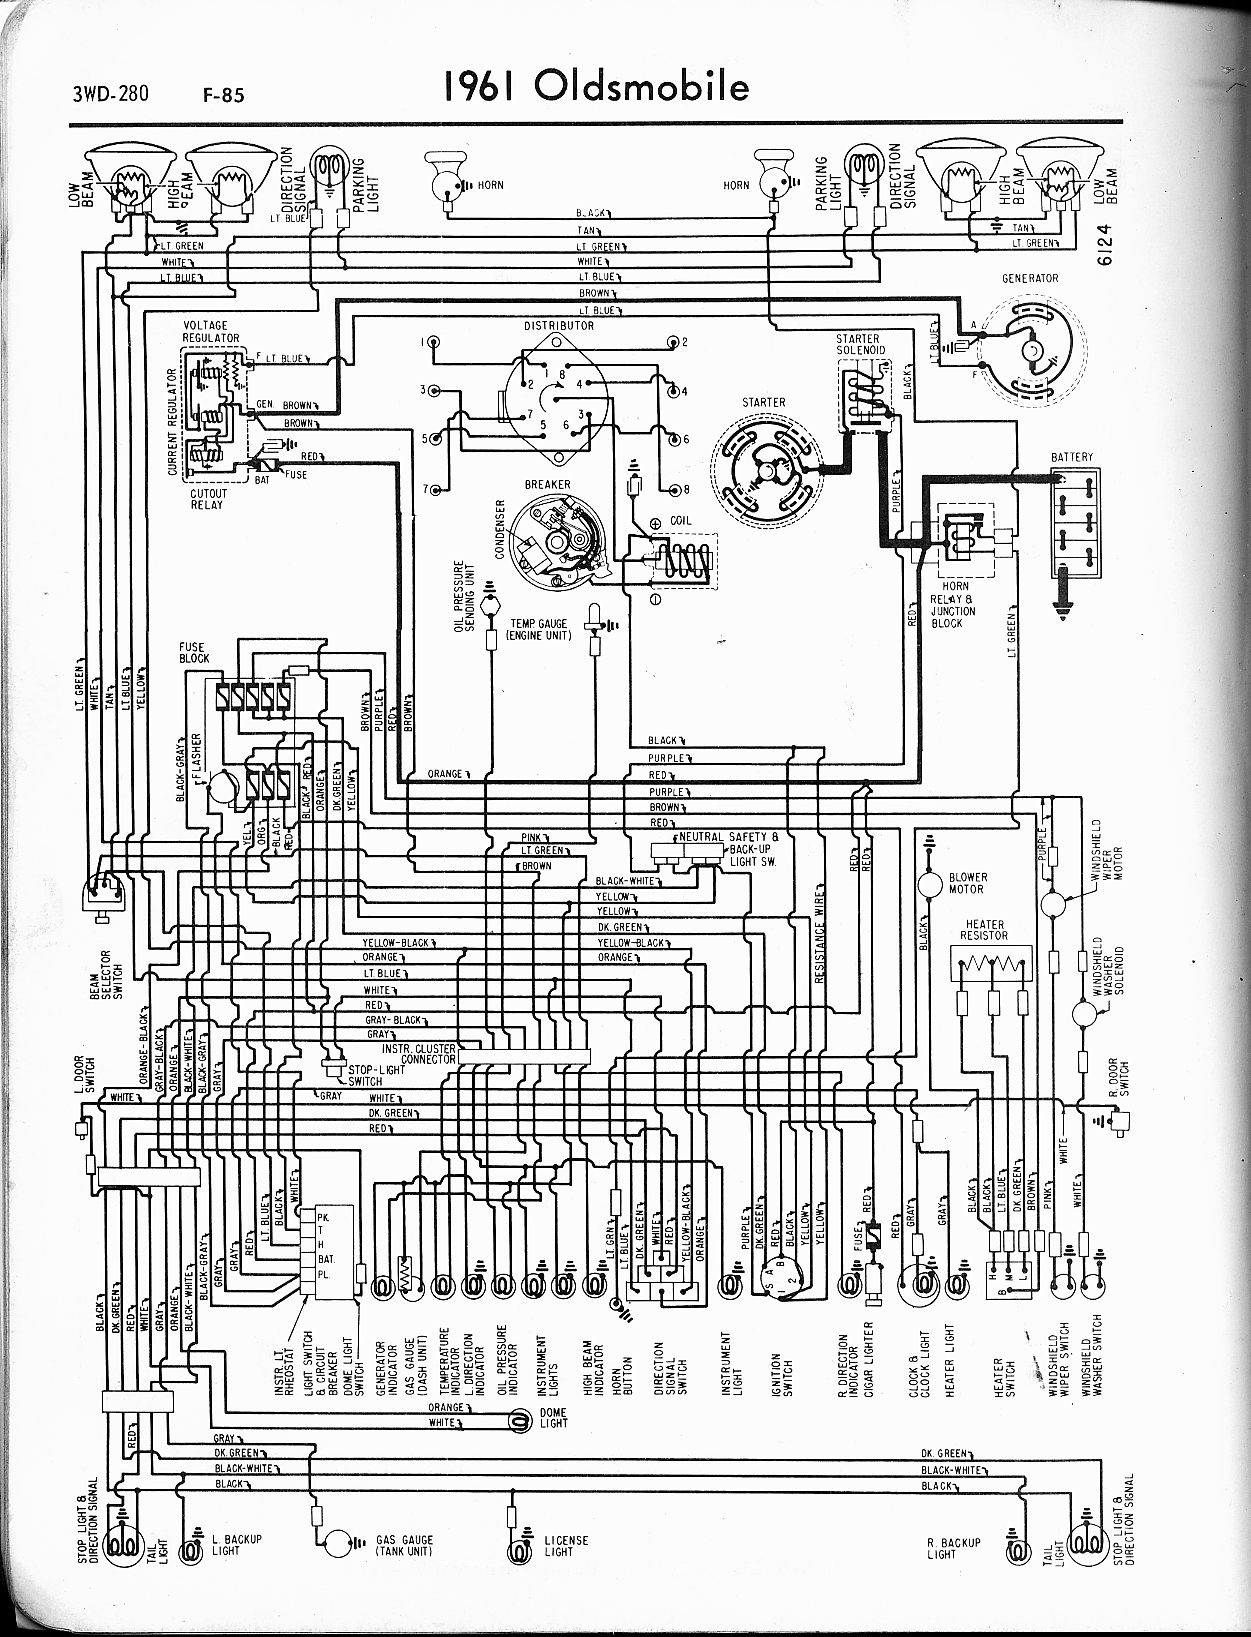 MWire5765 280 oldsmobile wiring diagrams the old car manual project Freightliner Power Window Wiring Diagram at alyssarenee.co